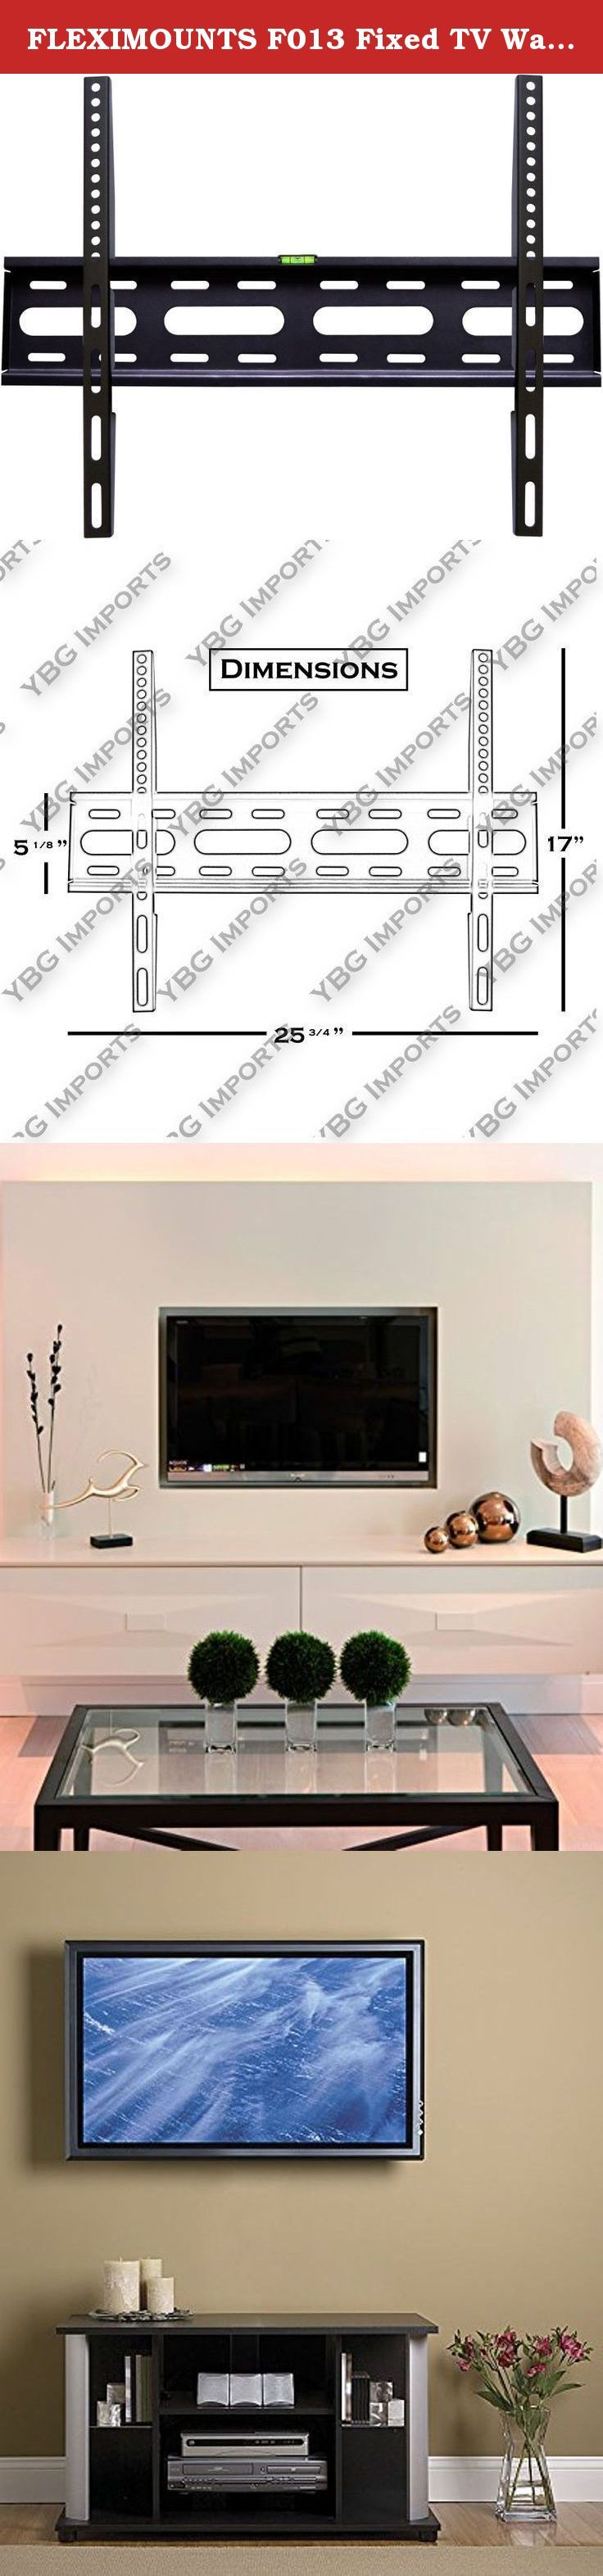 """FLEXIMOUNTS F013 Fixed TV Wall Mount Bracket fits for most of 32''-65'' Samsung/Coby/LG/VIZIO/Sharp/Sony/Toshiba/Seiki/TCL/Haier/Hisense LCD LED Plasma TV. """" Description: This FLEXIMOUNTS super low profile fixed slim TV mount bracket attach nearly flush to the wall to maximize the sleek, thinness of LED TVs which make TVs like a picture hanging on the wall; this mount can hold a TV with flat screen between 32'' and 65'' with max 600x400 VESA compatibility and max.88lbs loading capacity...."""